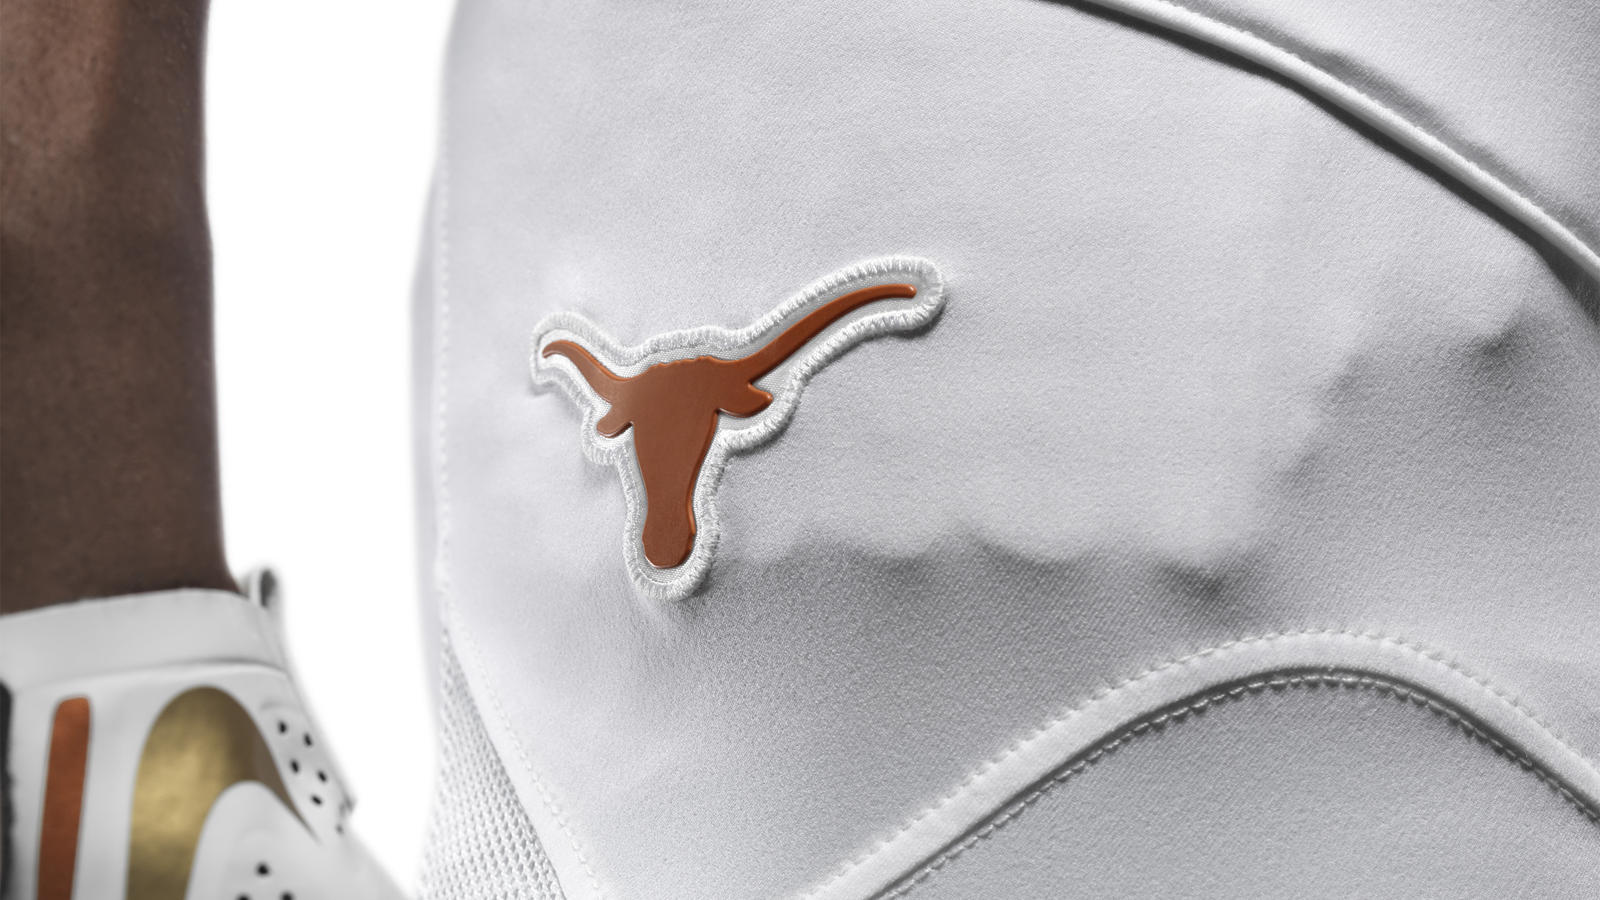 Ncaa Fb13 Uniforms Texas Pant Longhorn 0000